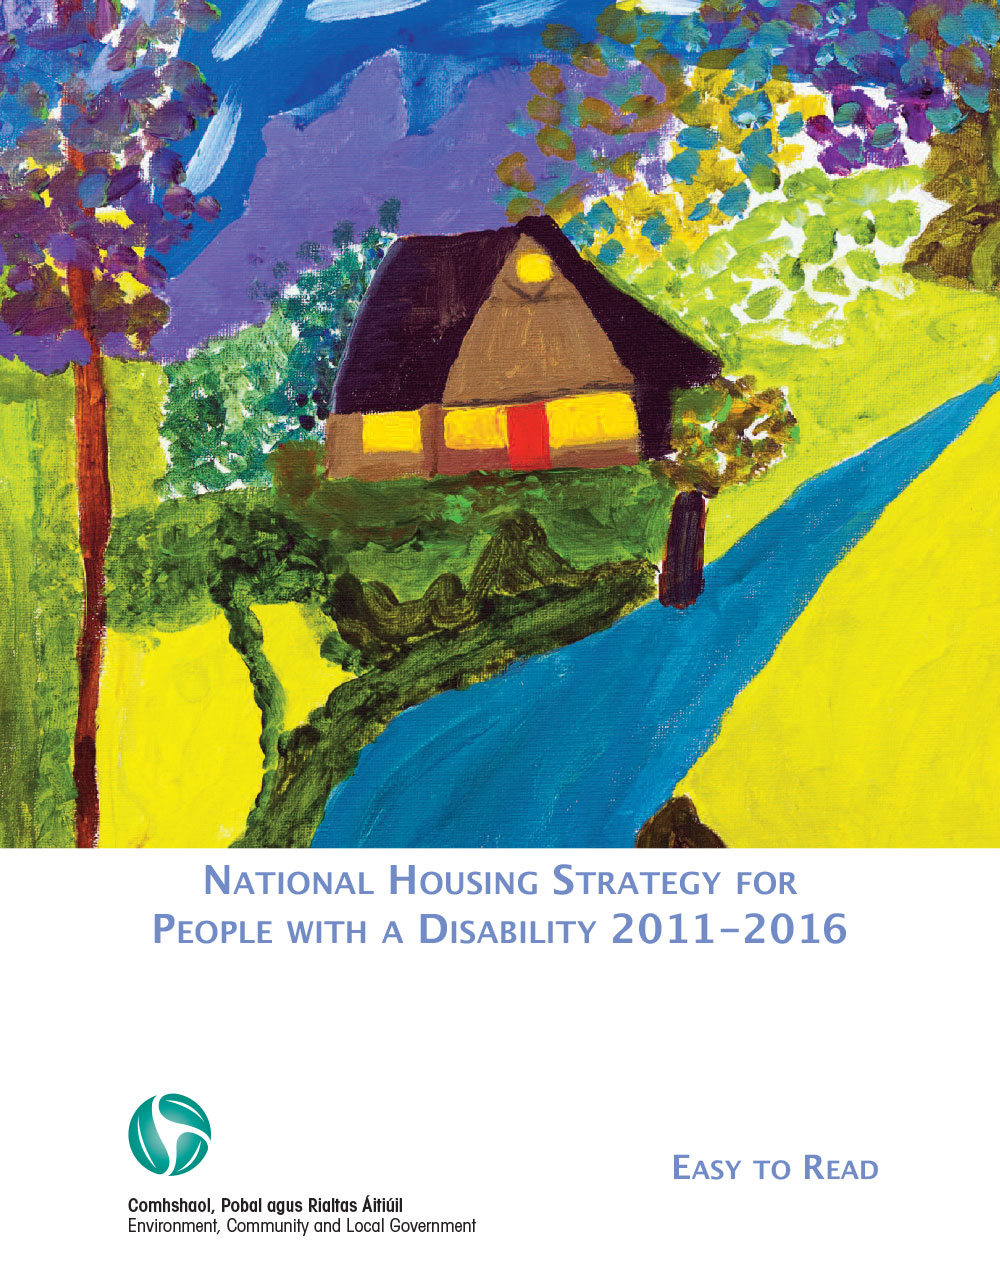 National Housing Strategy for People with a Disability